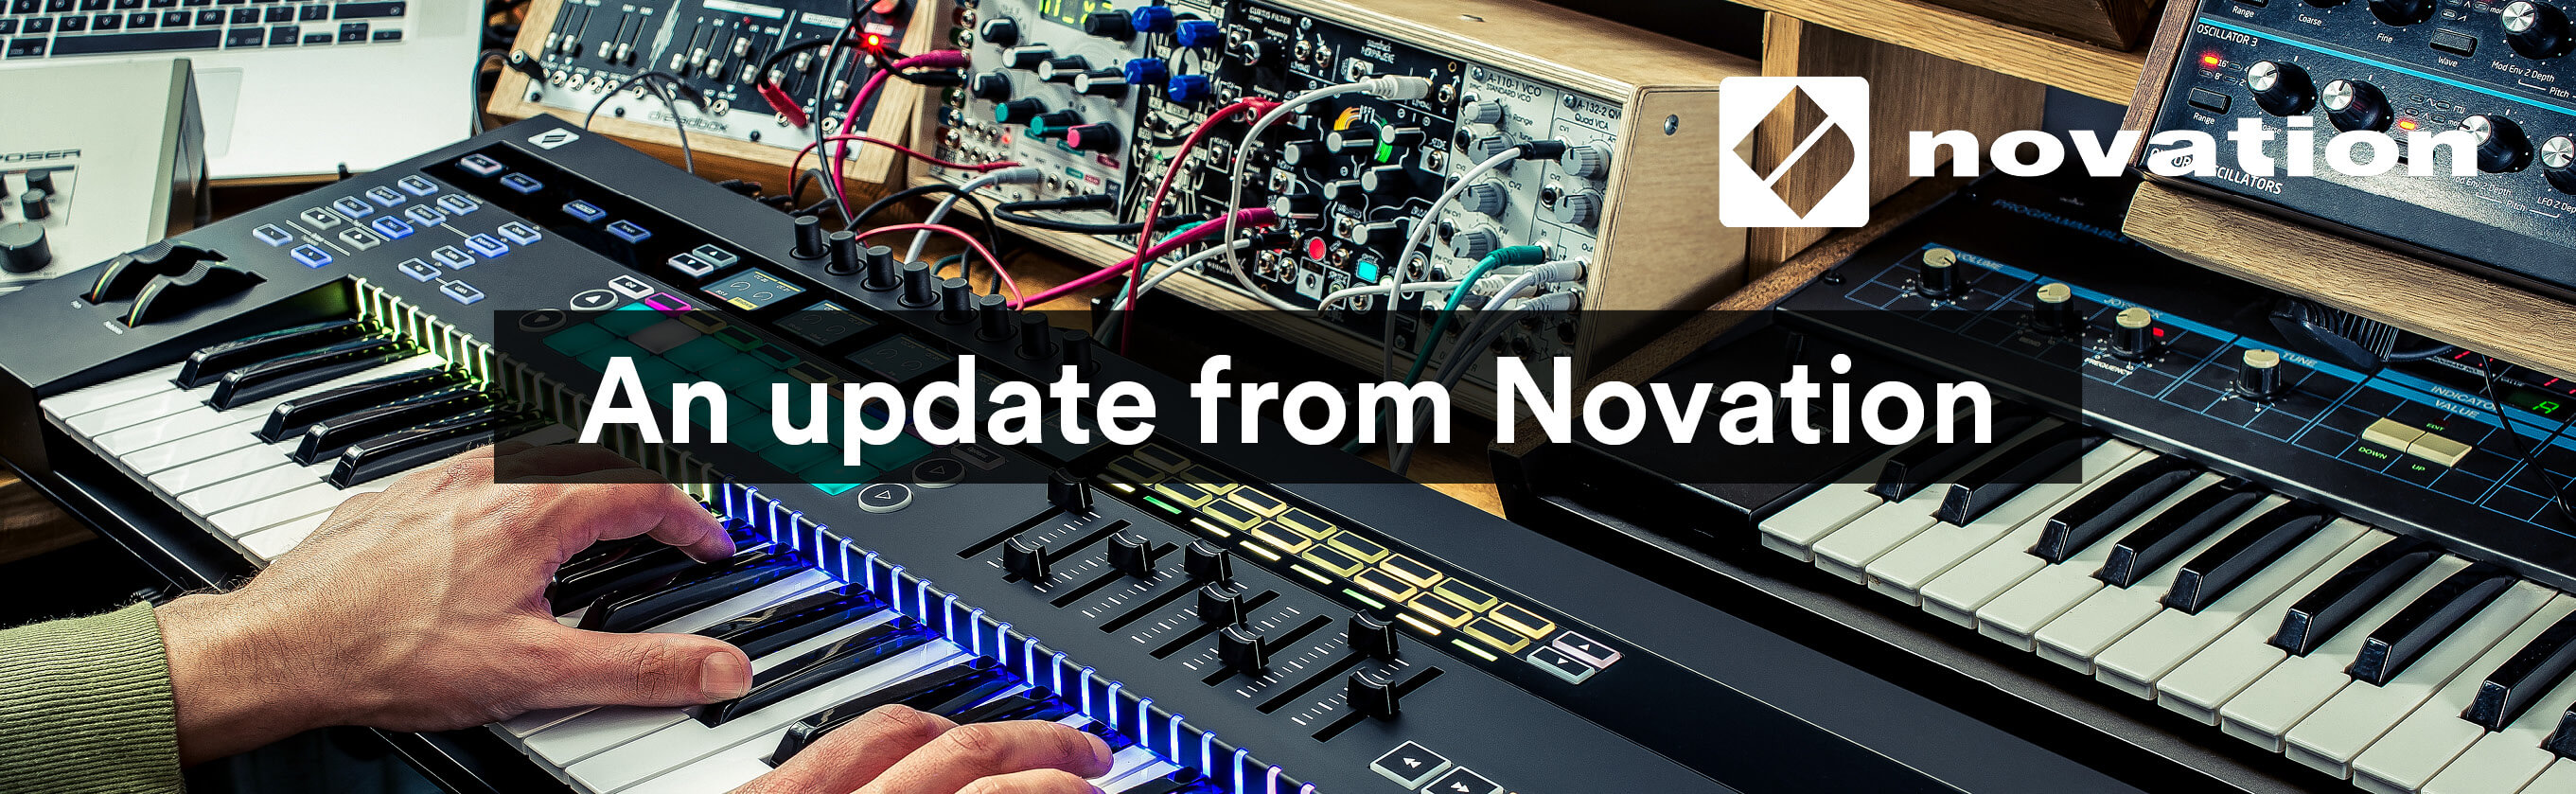 Novation Update